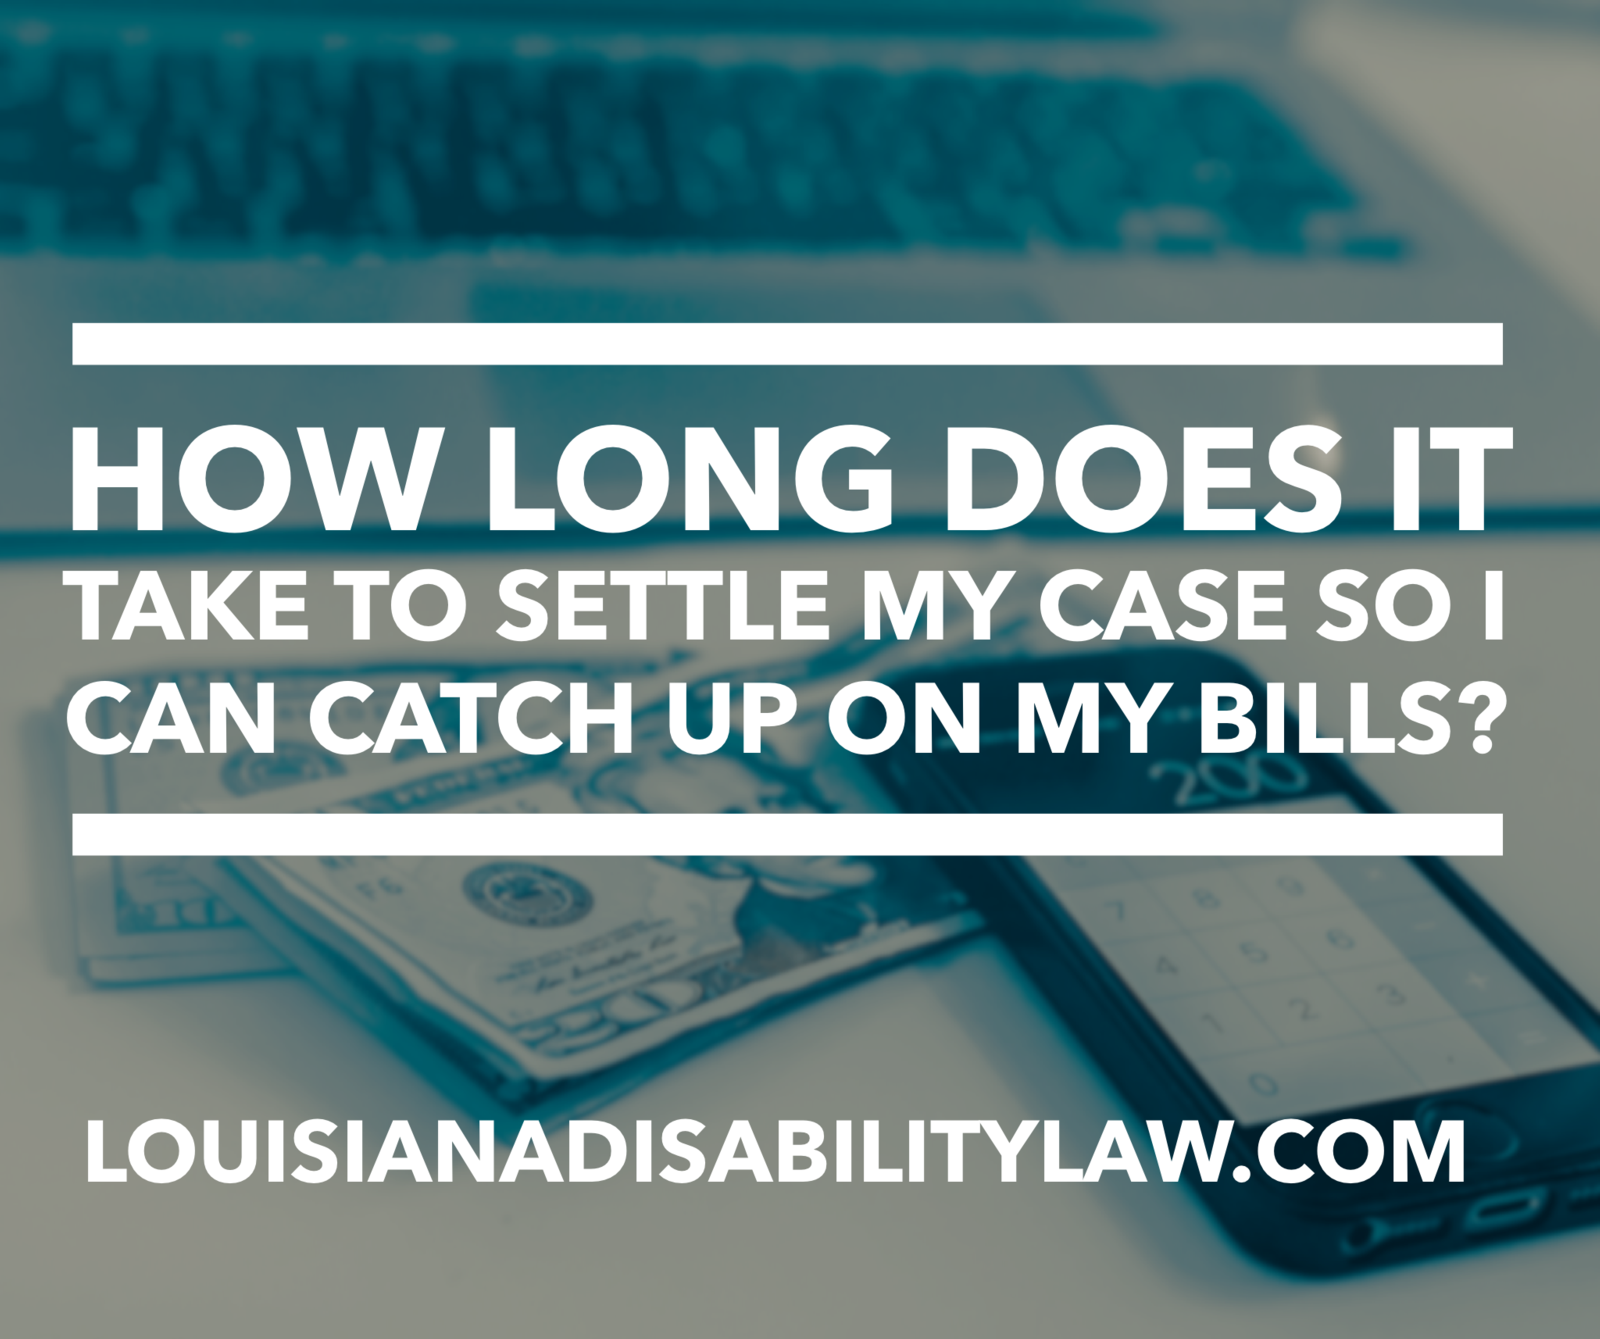 How long does it take to settle my case so I can catch up on my bills?